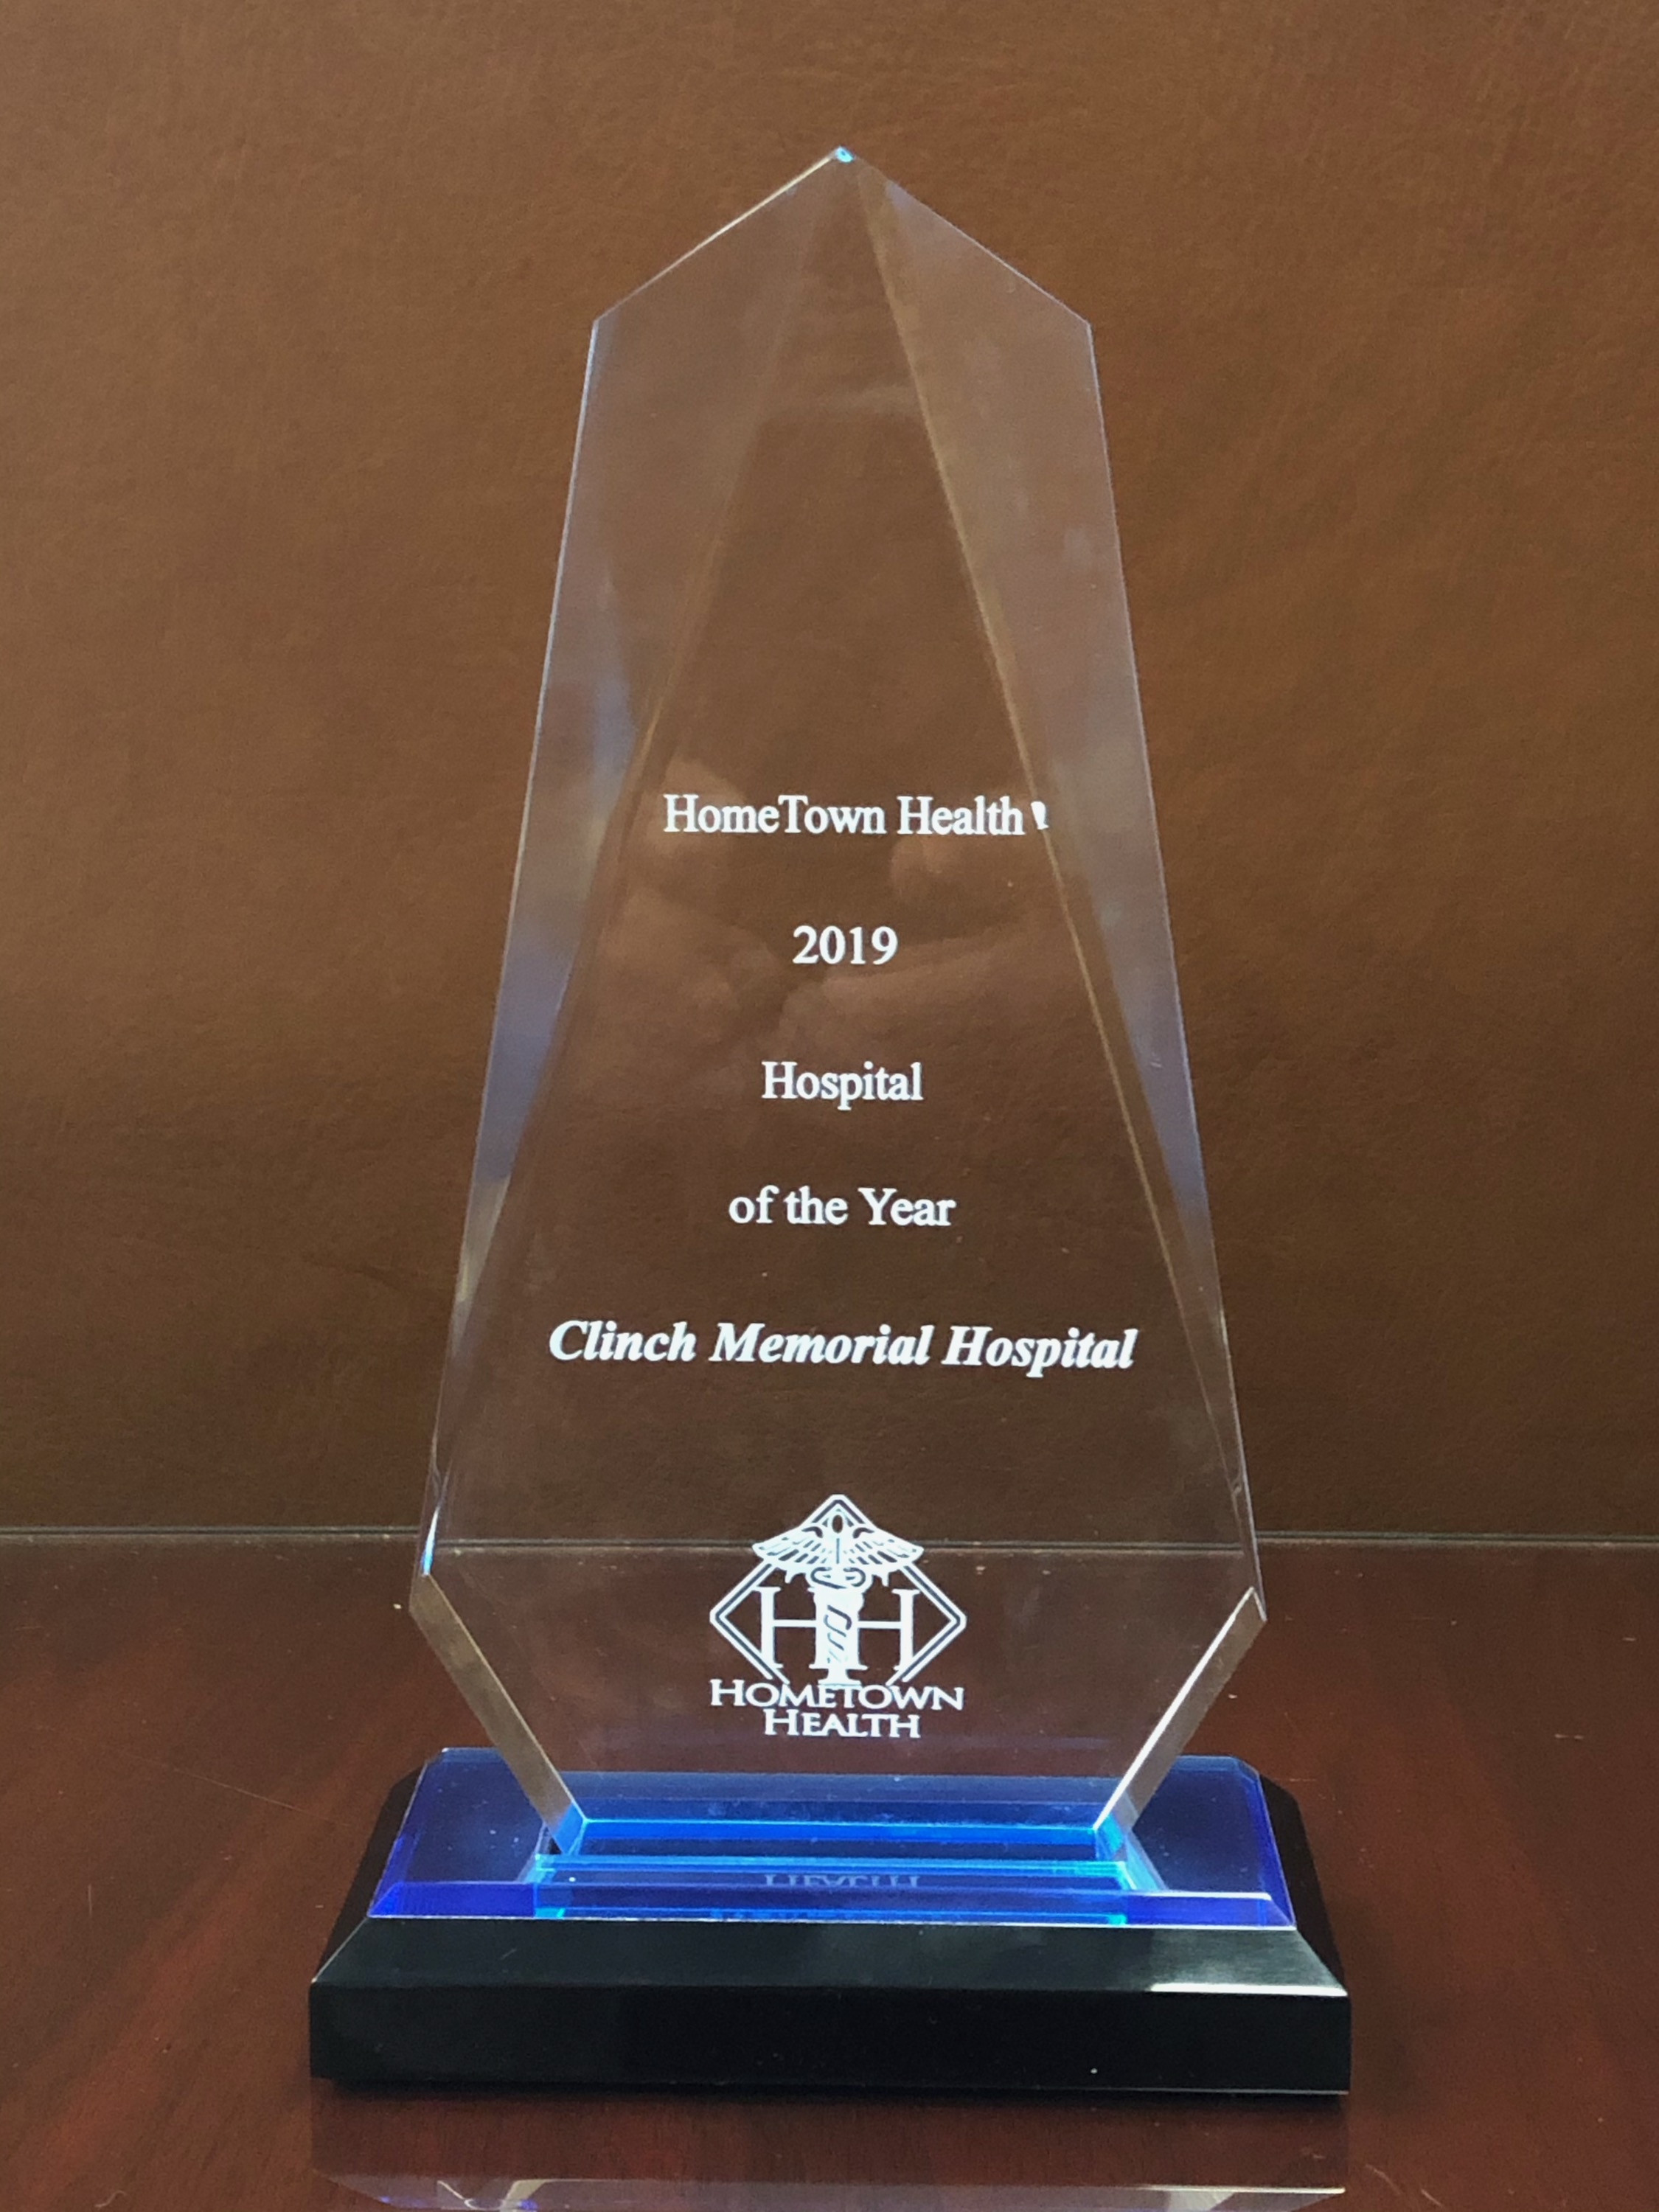 Clinch Memorial Hospital is HomeTown Health's Hospital of the Year.